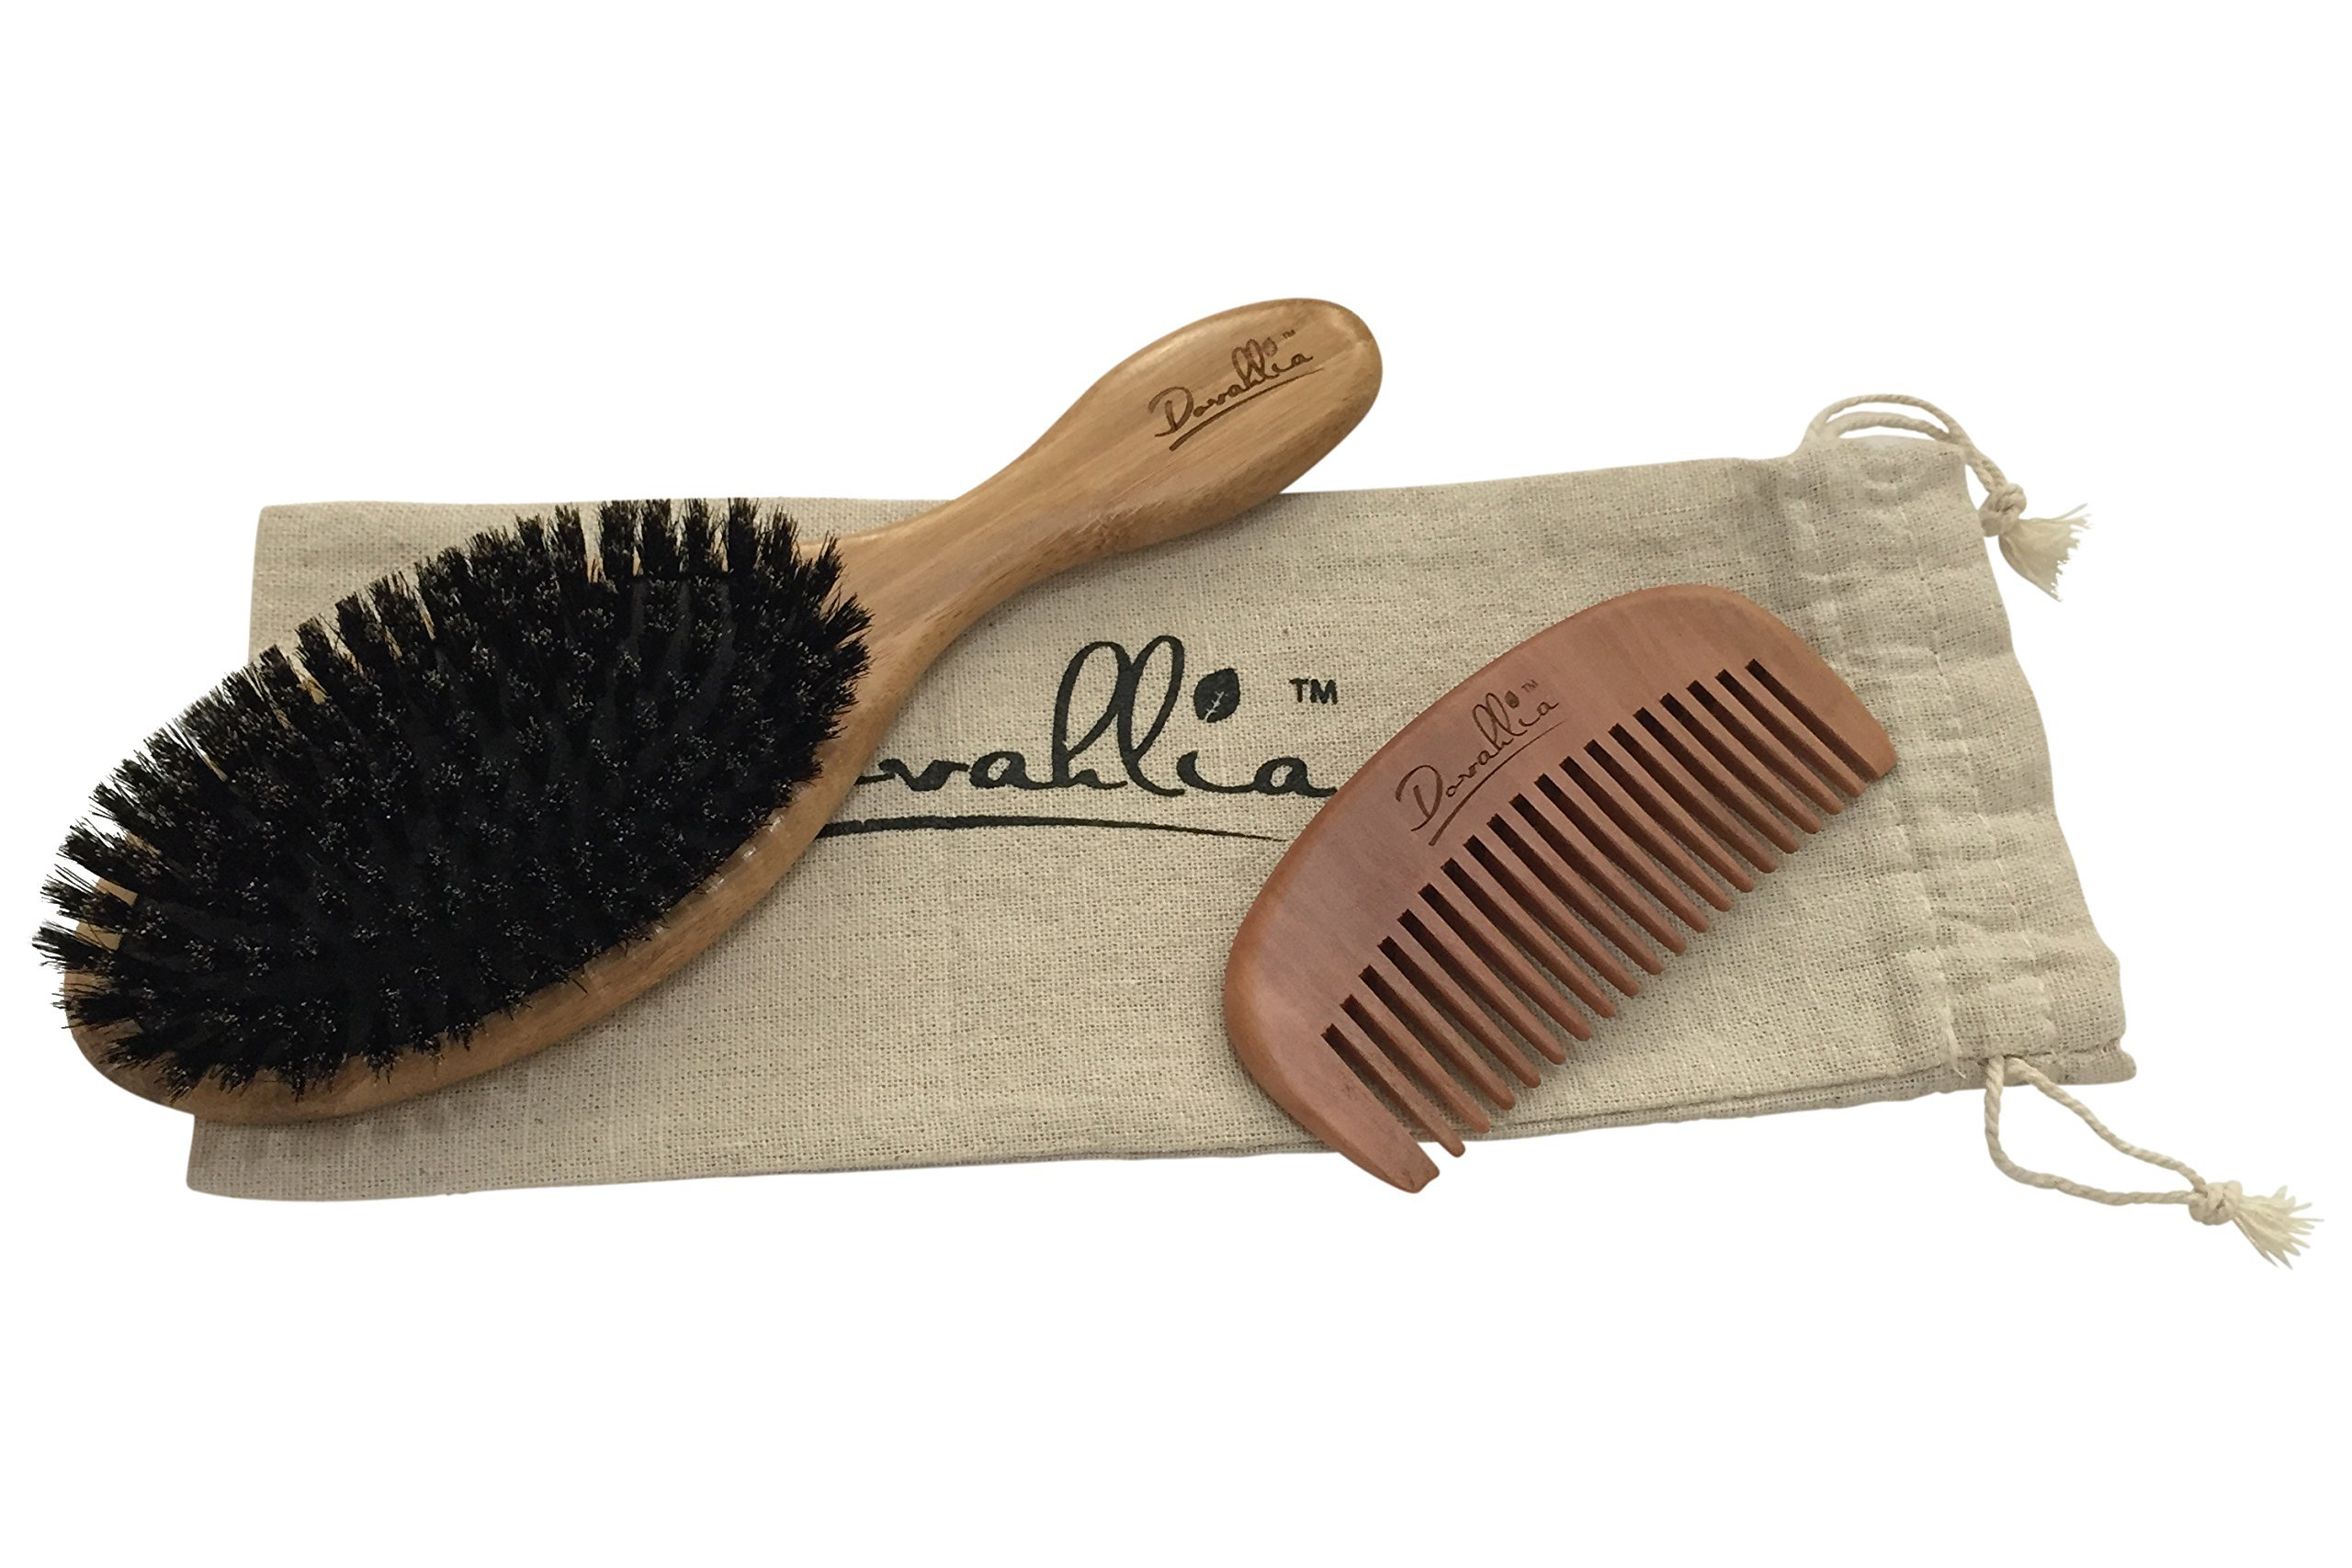 Boar Bristle Hair Brush Set for Women and Men - Designed for Thin and Normal Hair - Adds Shine and Improves Hair Texture - Wood Comb and Gift Bag Included (black) by Dovahlia (Image #9)